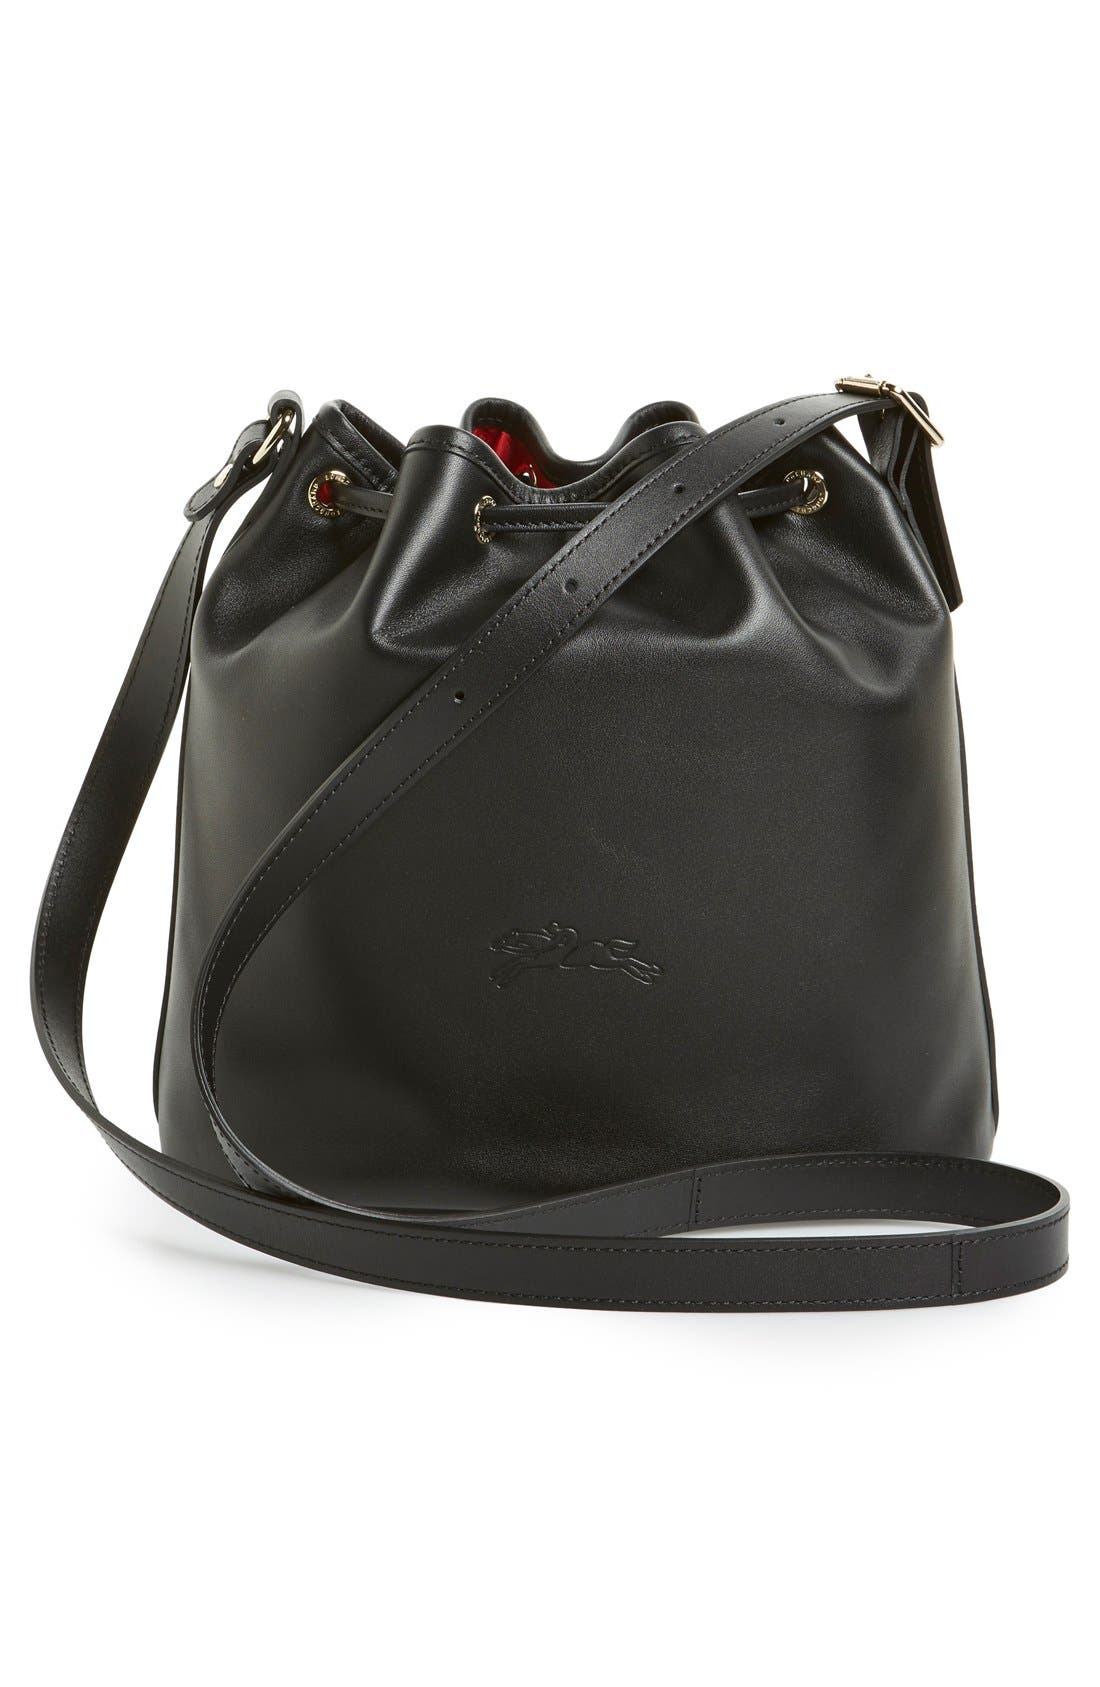 LONGCHAMP, 'Small 2.0' Leather Bucket Bag, Alternate thumbnail 5, color, 001